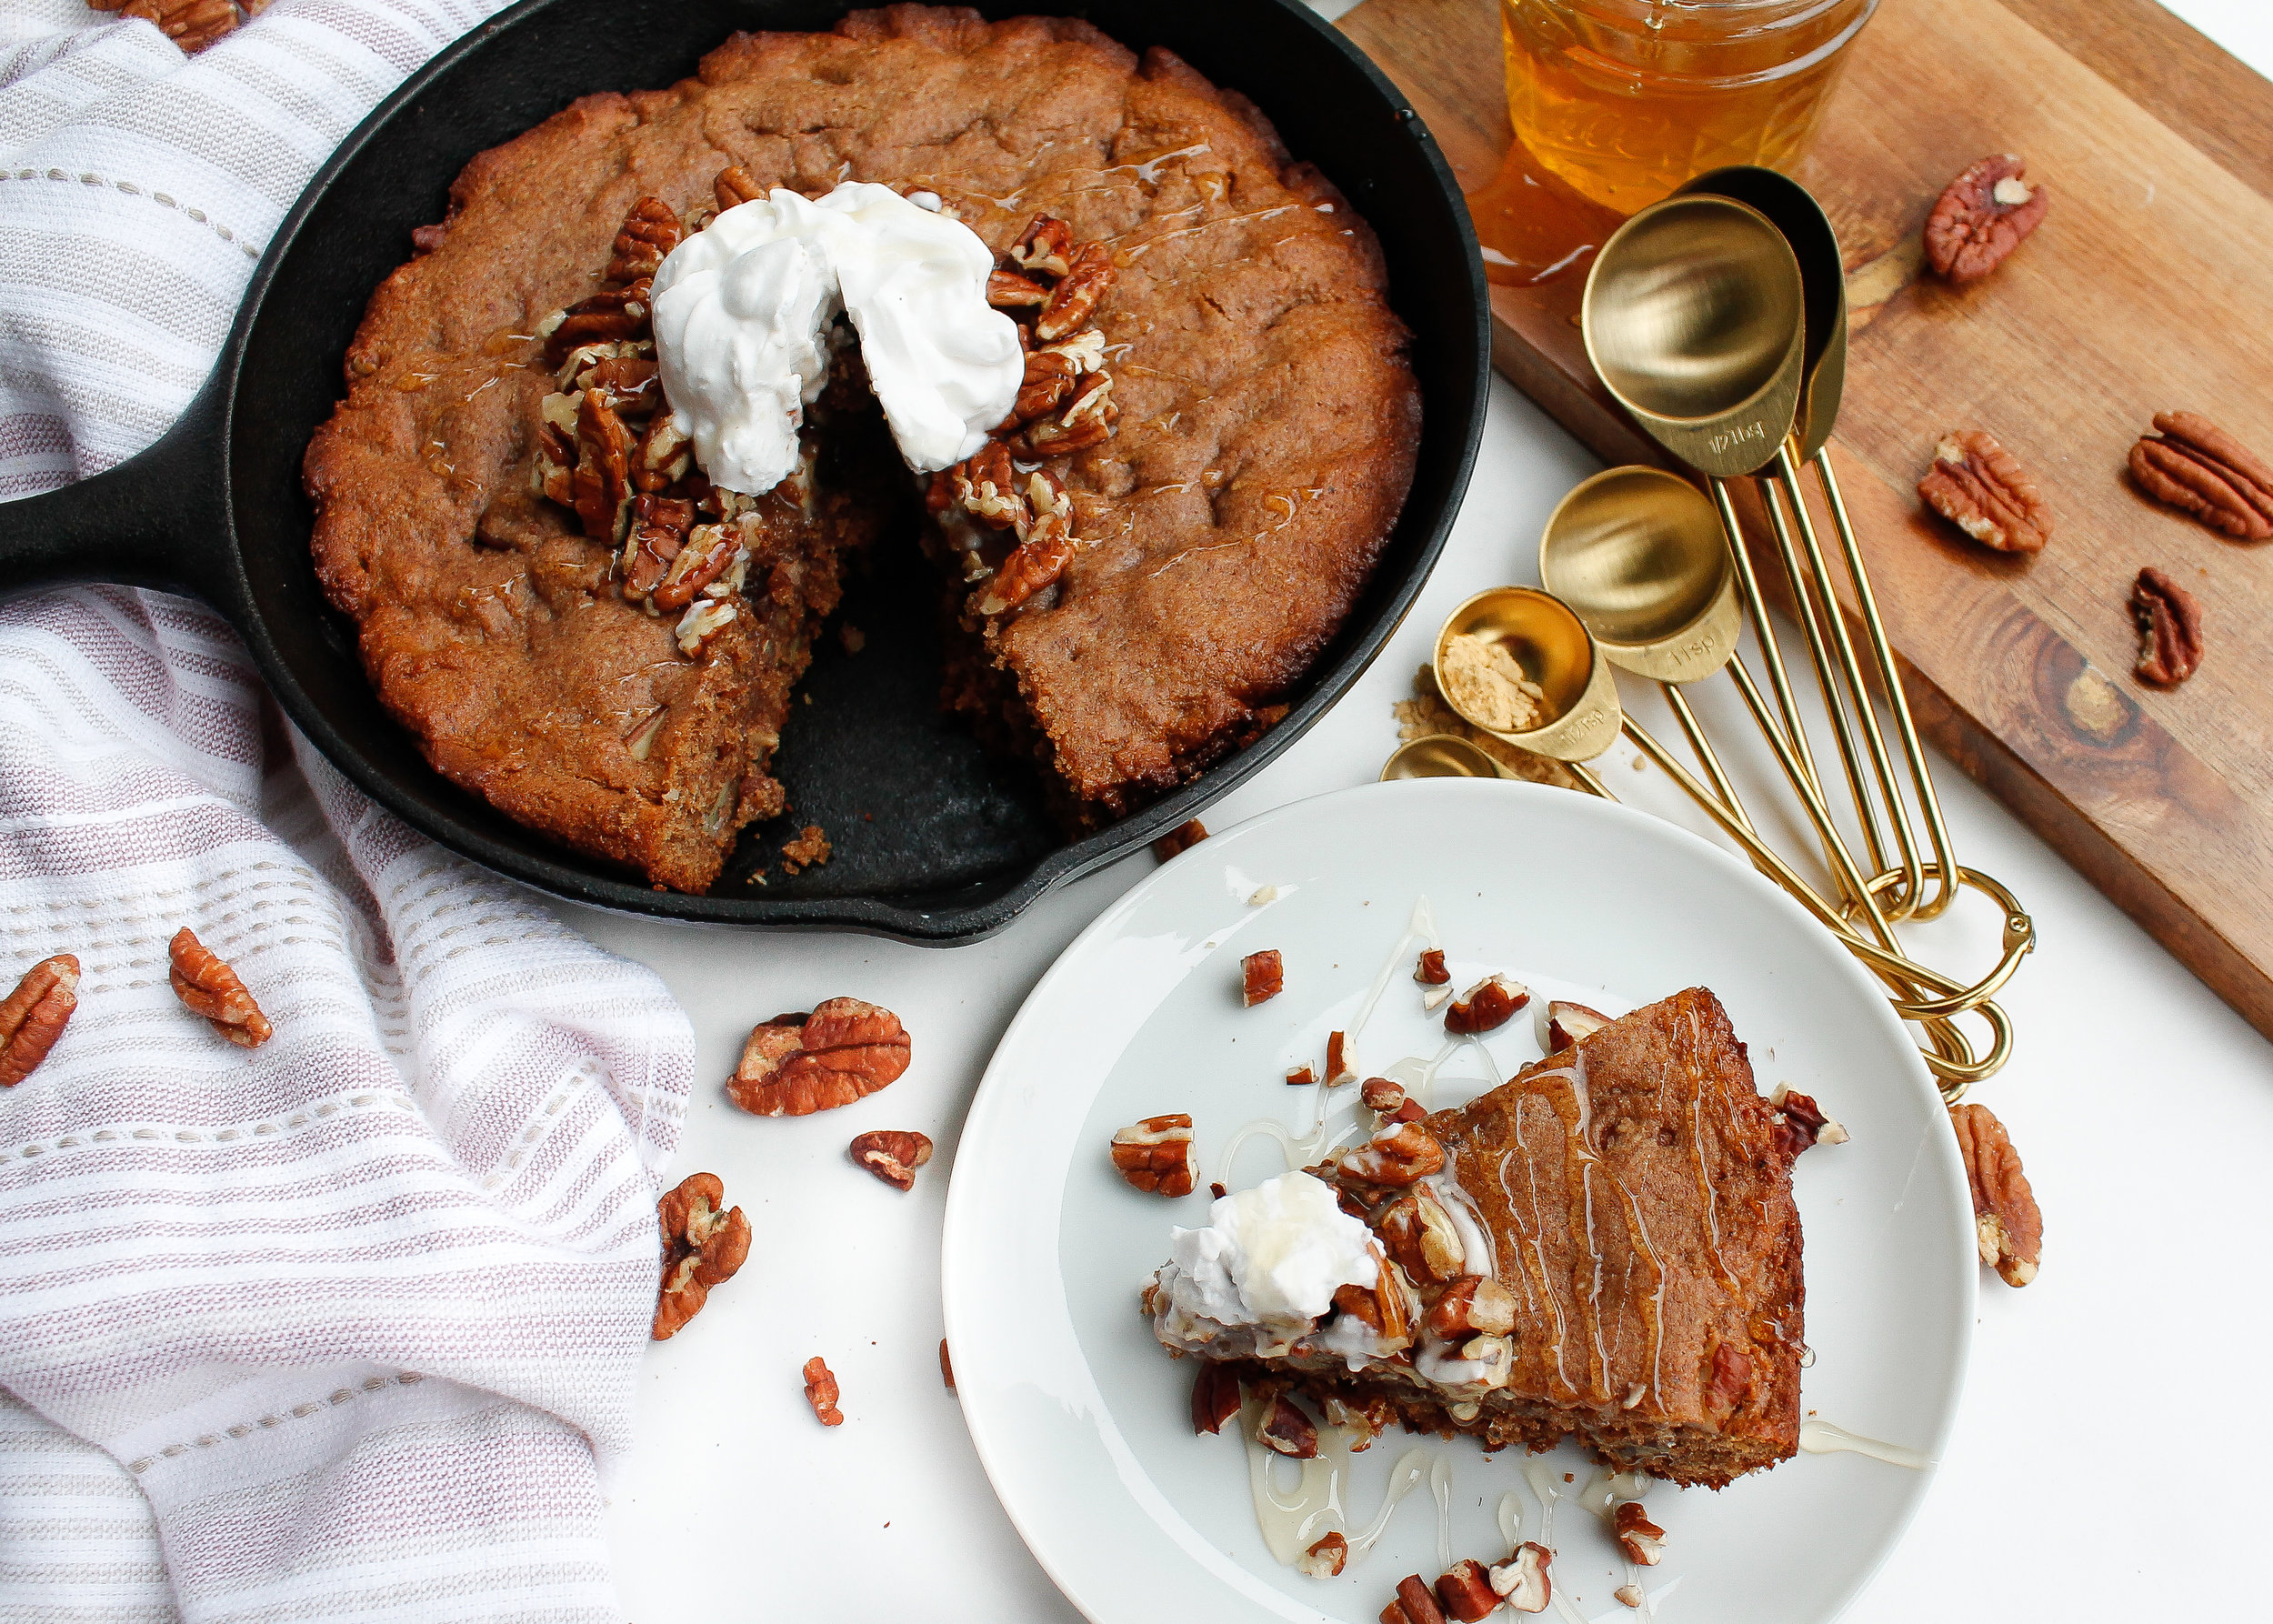 This molasses-free paleo gingerbread skillet is perfect ANY time of the year! It's a great option for healthy dessert or even a healthy, sweet breakfast. Top with candied pecans and coconut yogurt and you're in for a real treat! It's also gluten free, dairy free, refined sugar free and specific carbohydrate diet friendly! #scddiet #specificcarbohydratediet